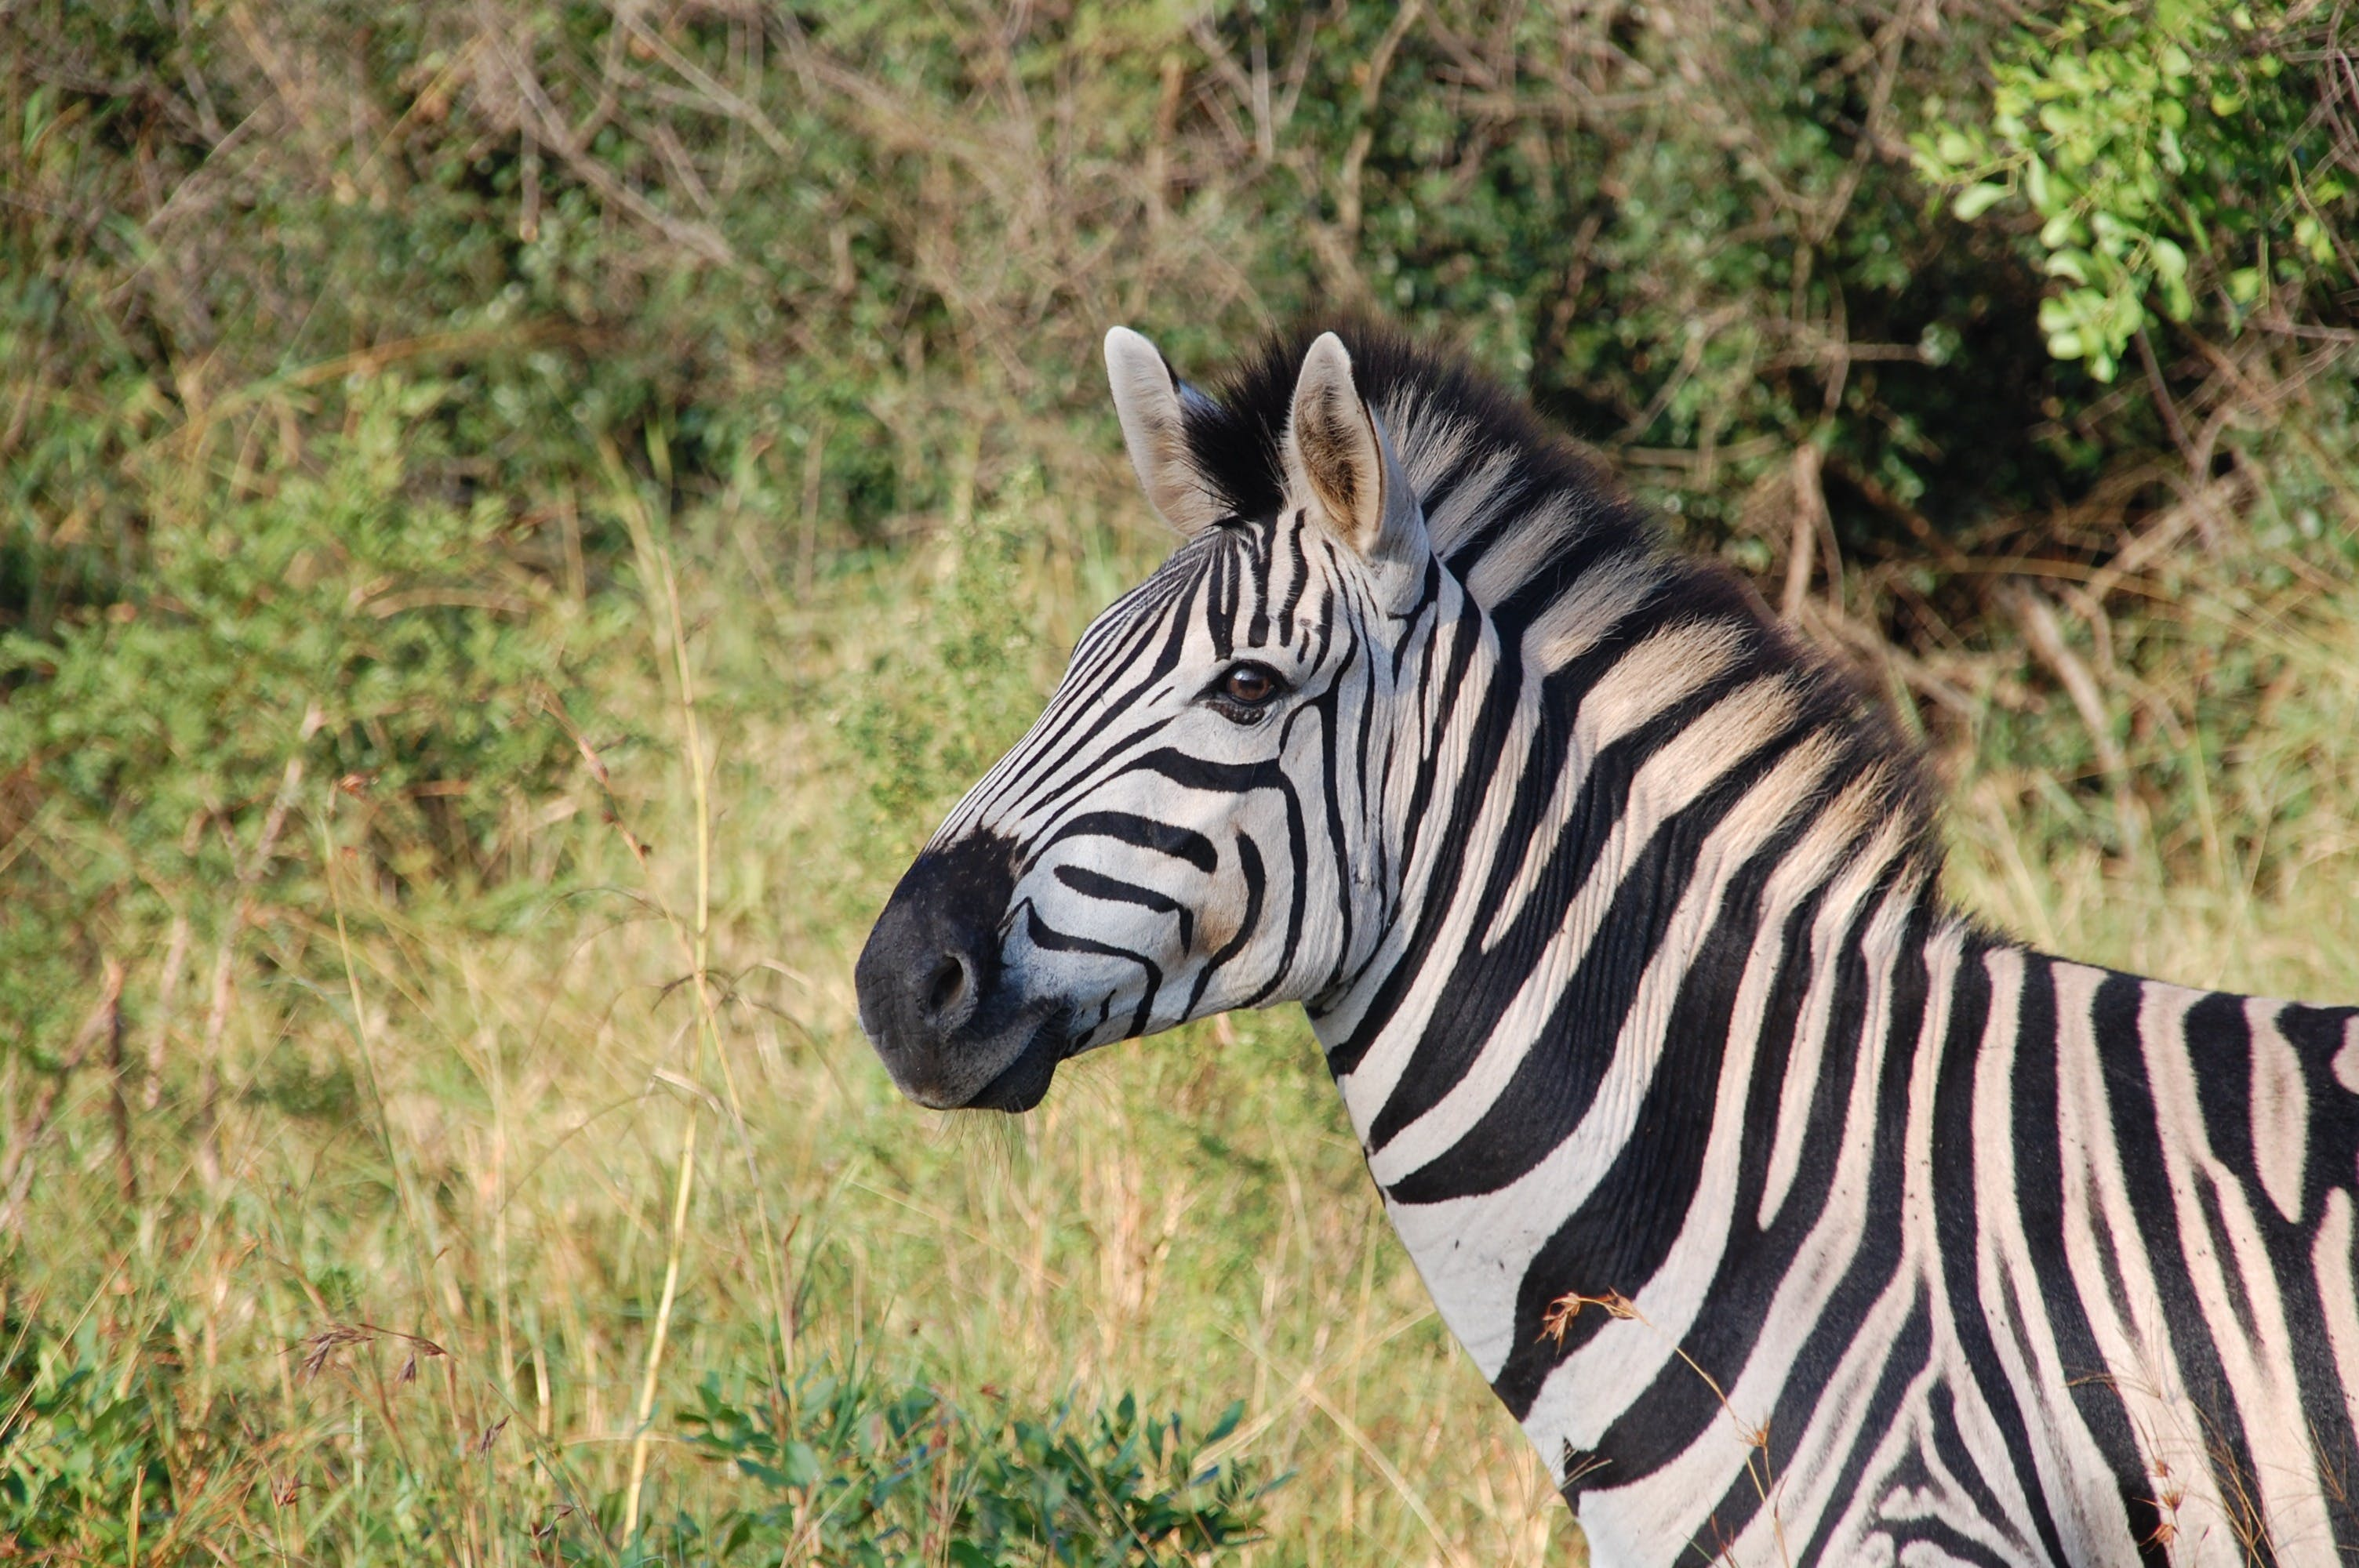 Zebra Near Green Plants